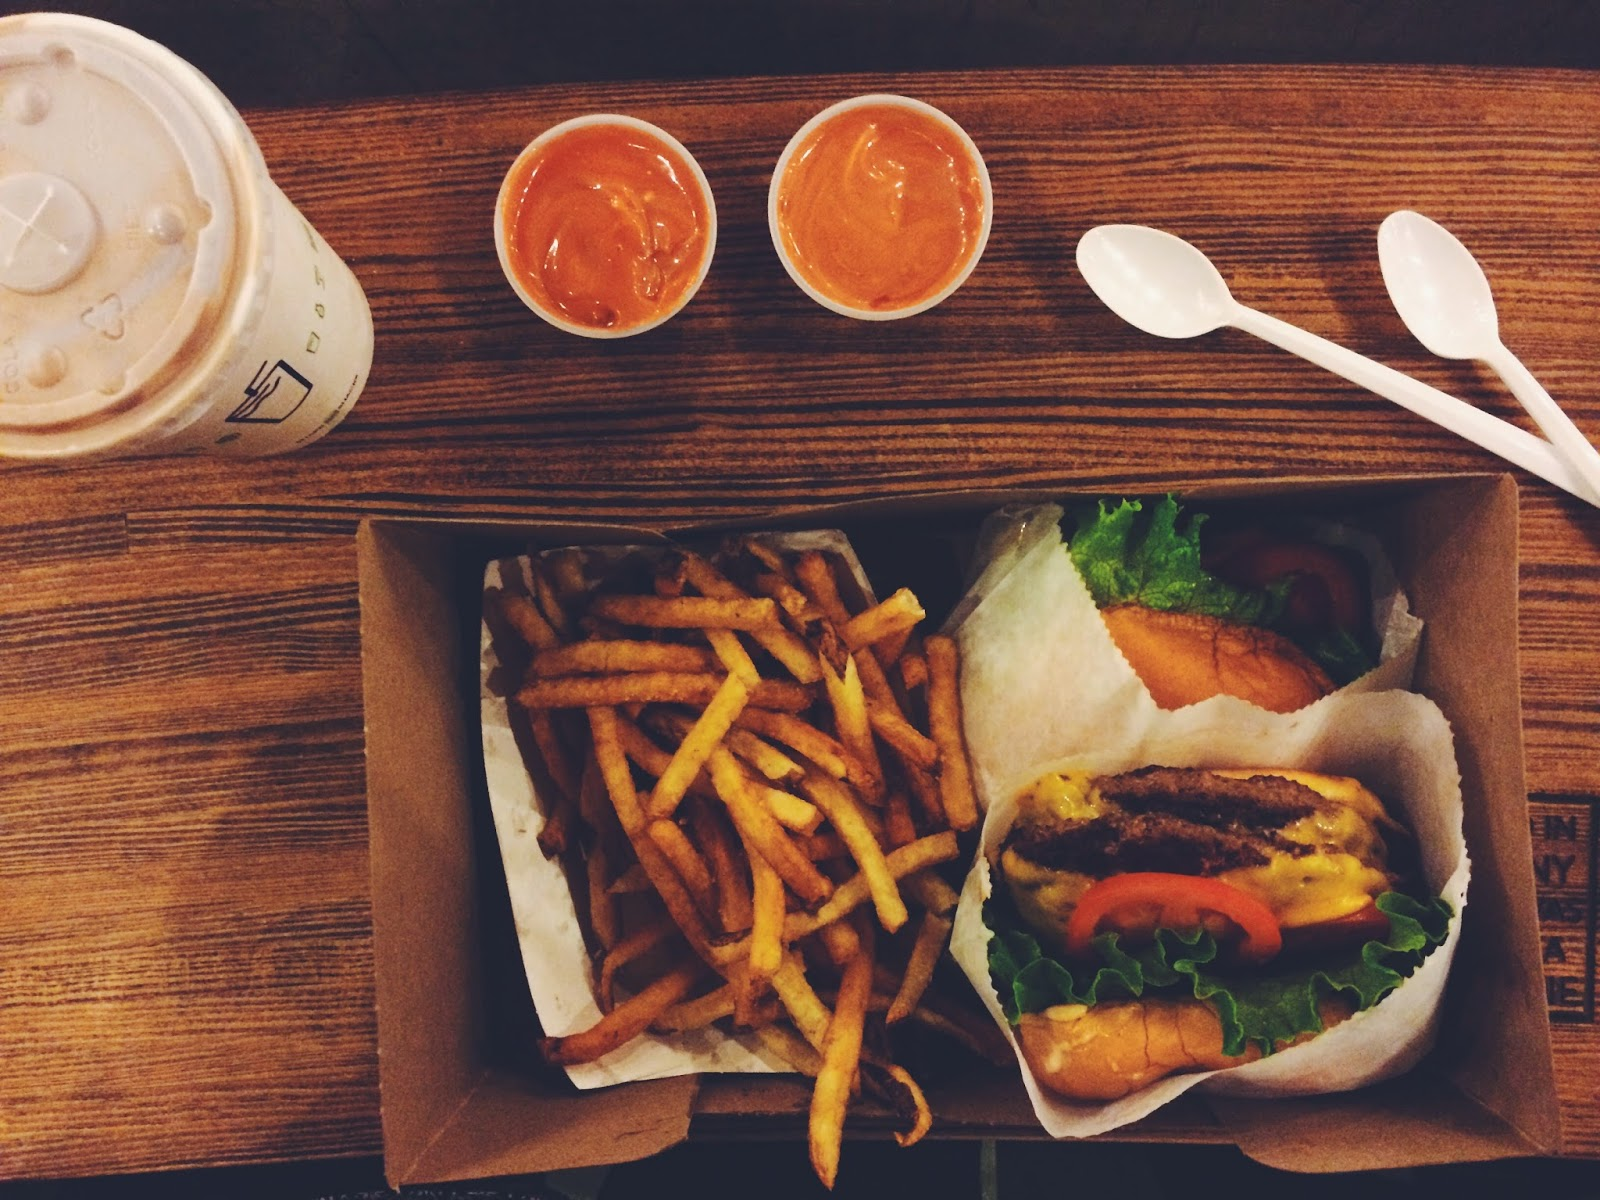 Burger, Fries, Chocolate Shake